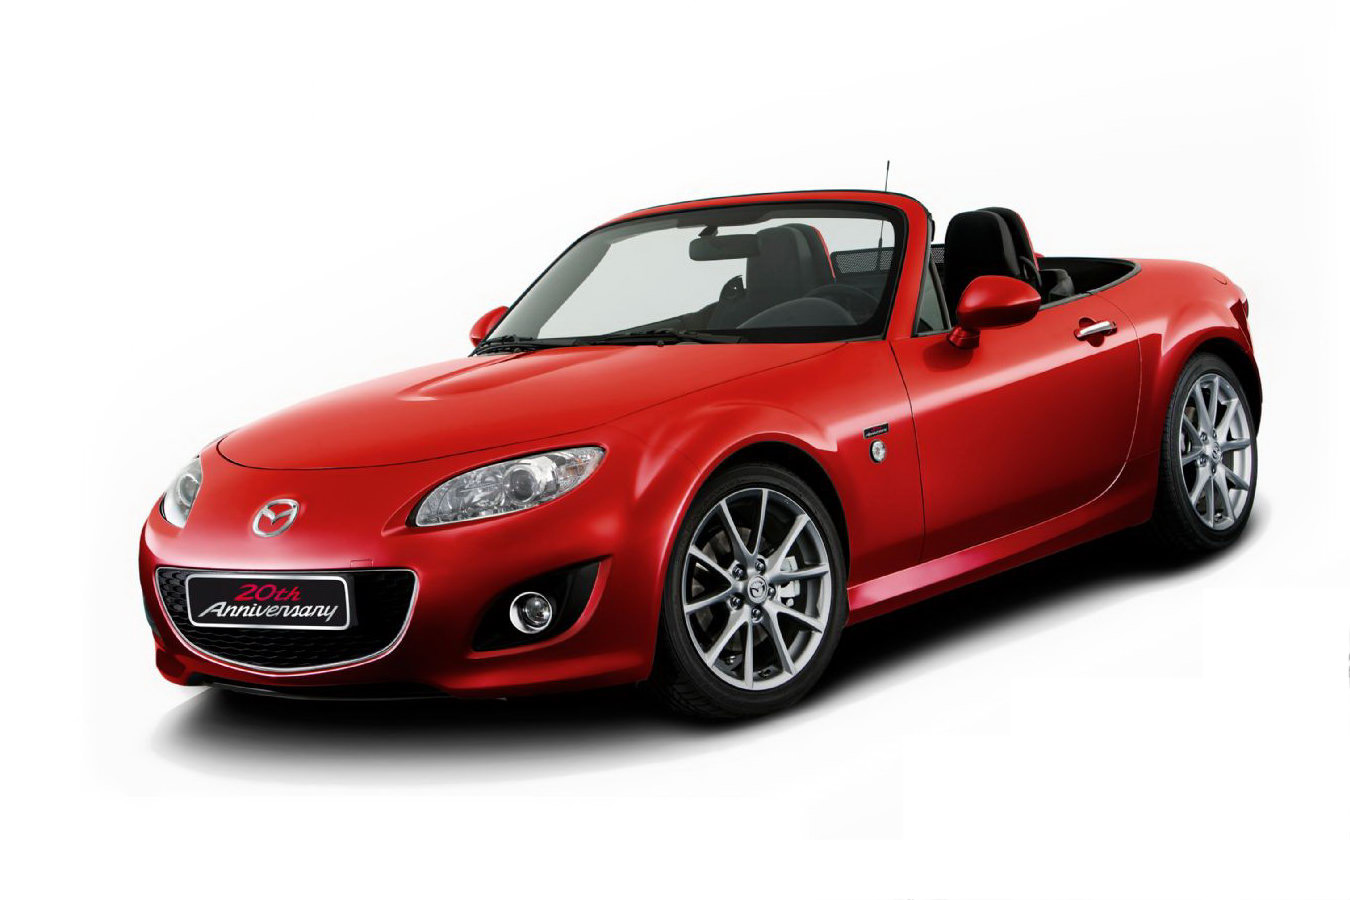 mazda mx 5 2015 review amazing pictures and images look at the car. Black Bedroom Furniture Sets. Home Design Ideas